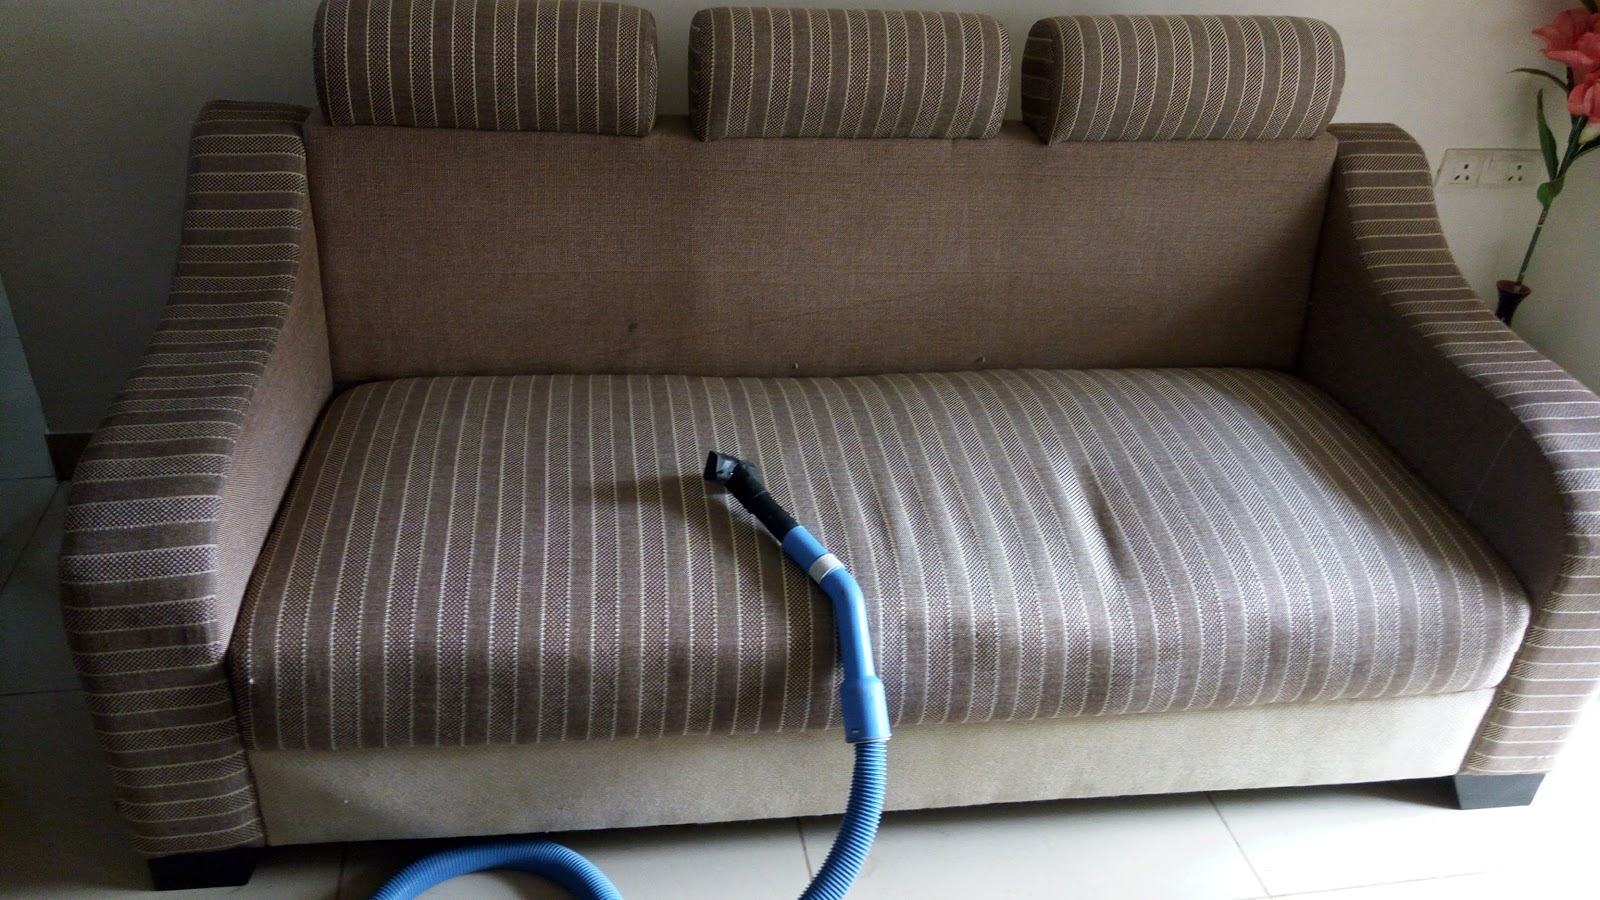 Sofa Cleaning Services In Jaipur Best Dry At Home Call 7728062220